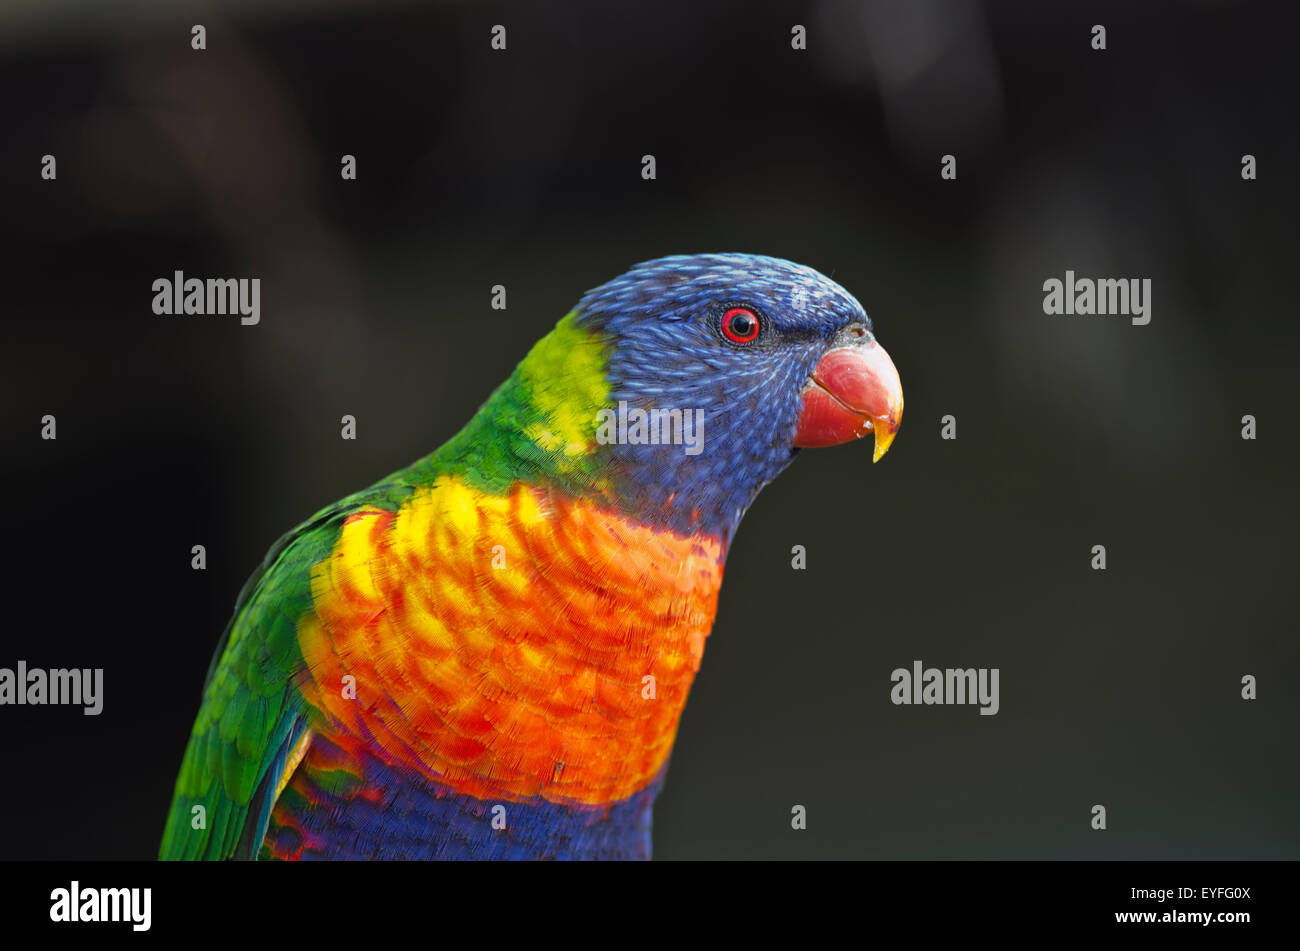 close-up-of-a-rainbow-lorikeet-trichoglossus-haematodus-EYFG0X.jpg